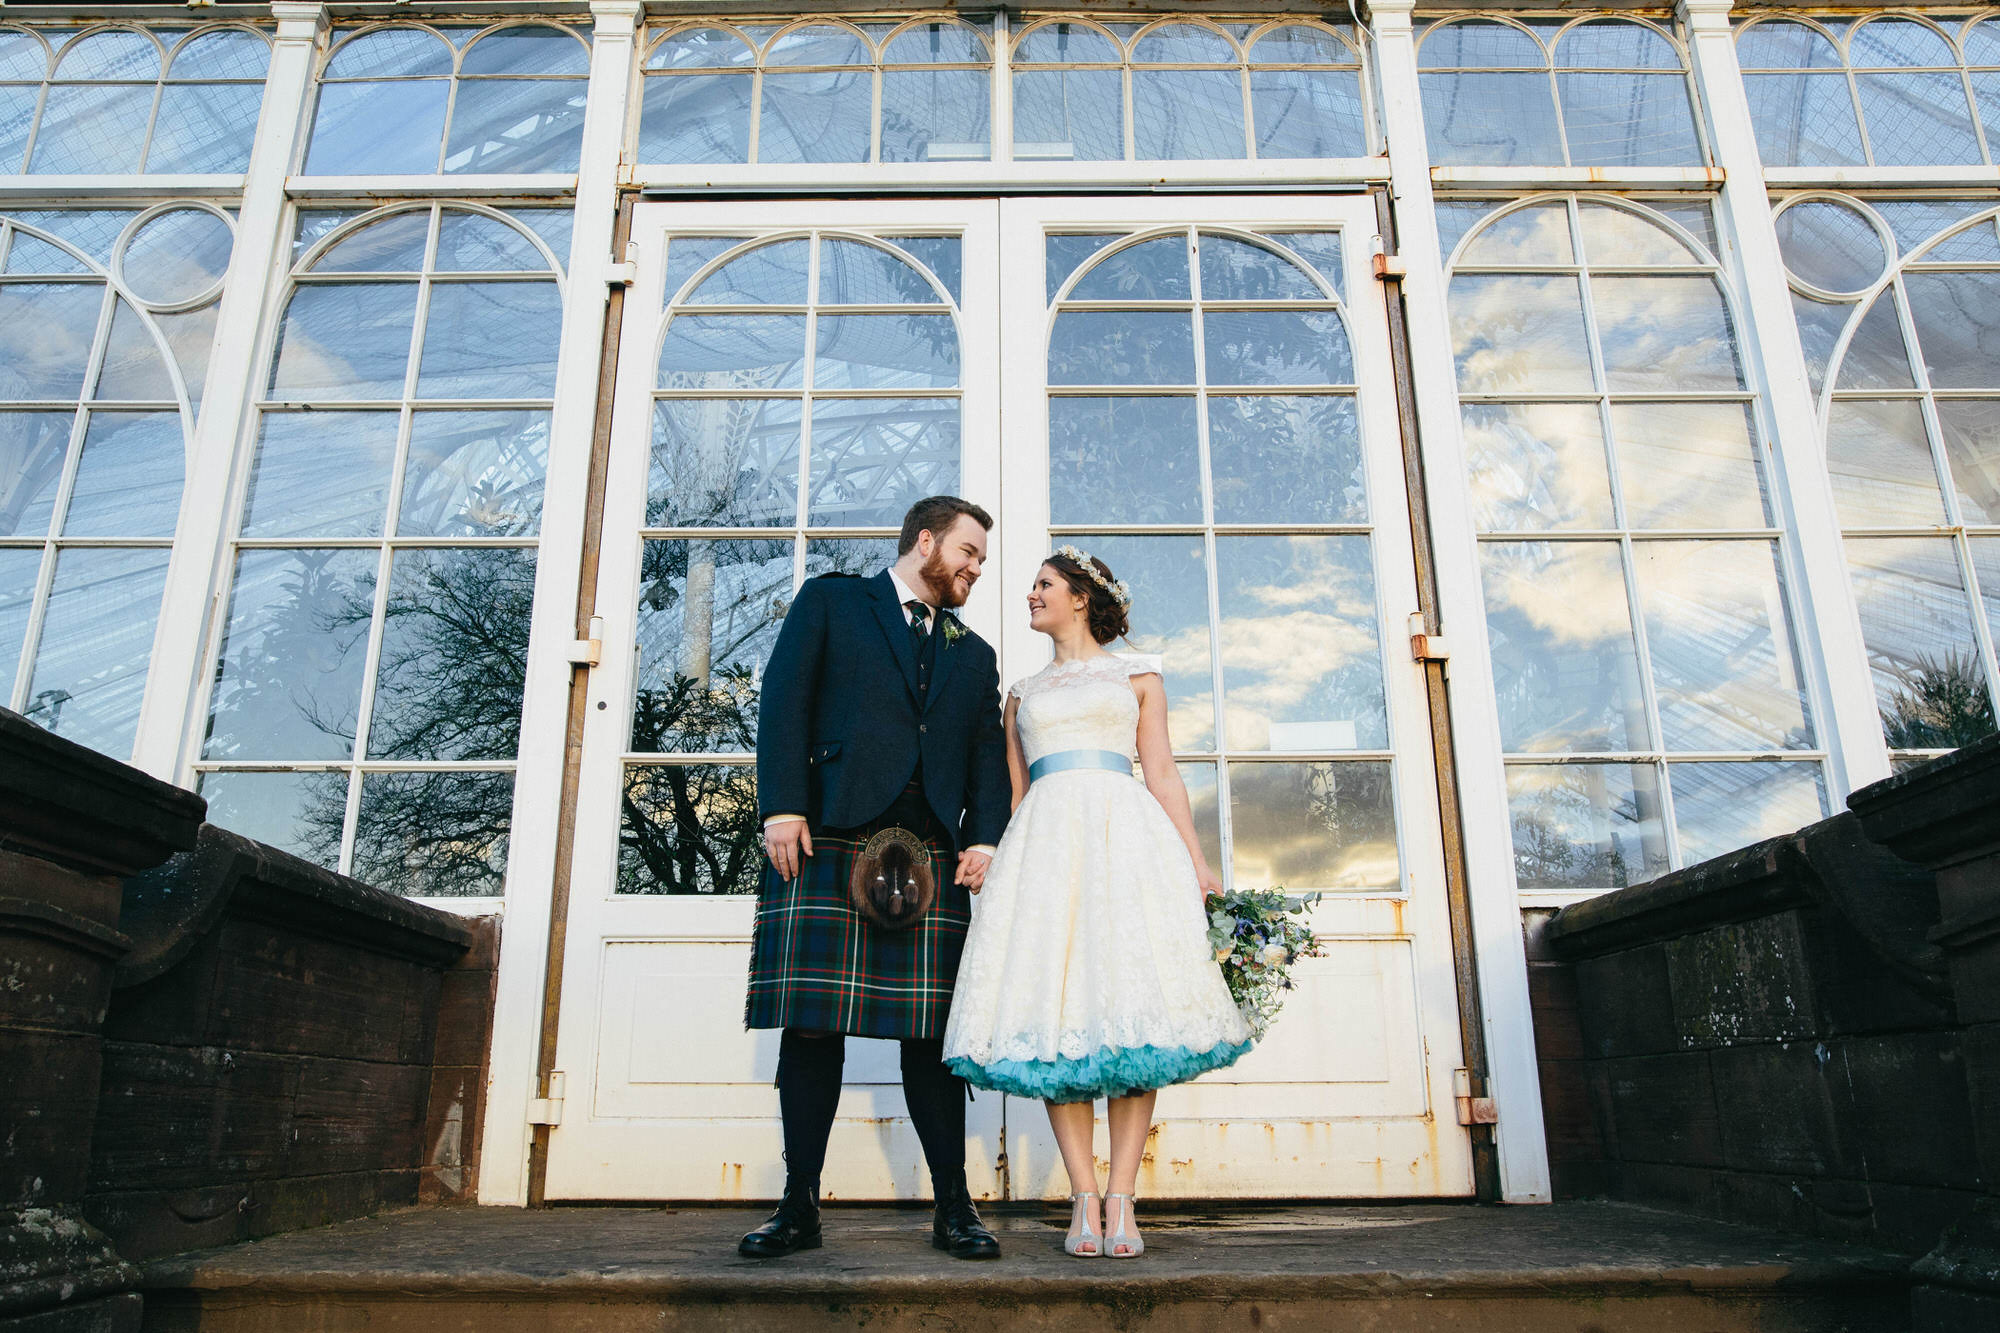 Alternative Natural Quirky Wedding Photographs UK Scotland 124.jpg